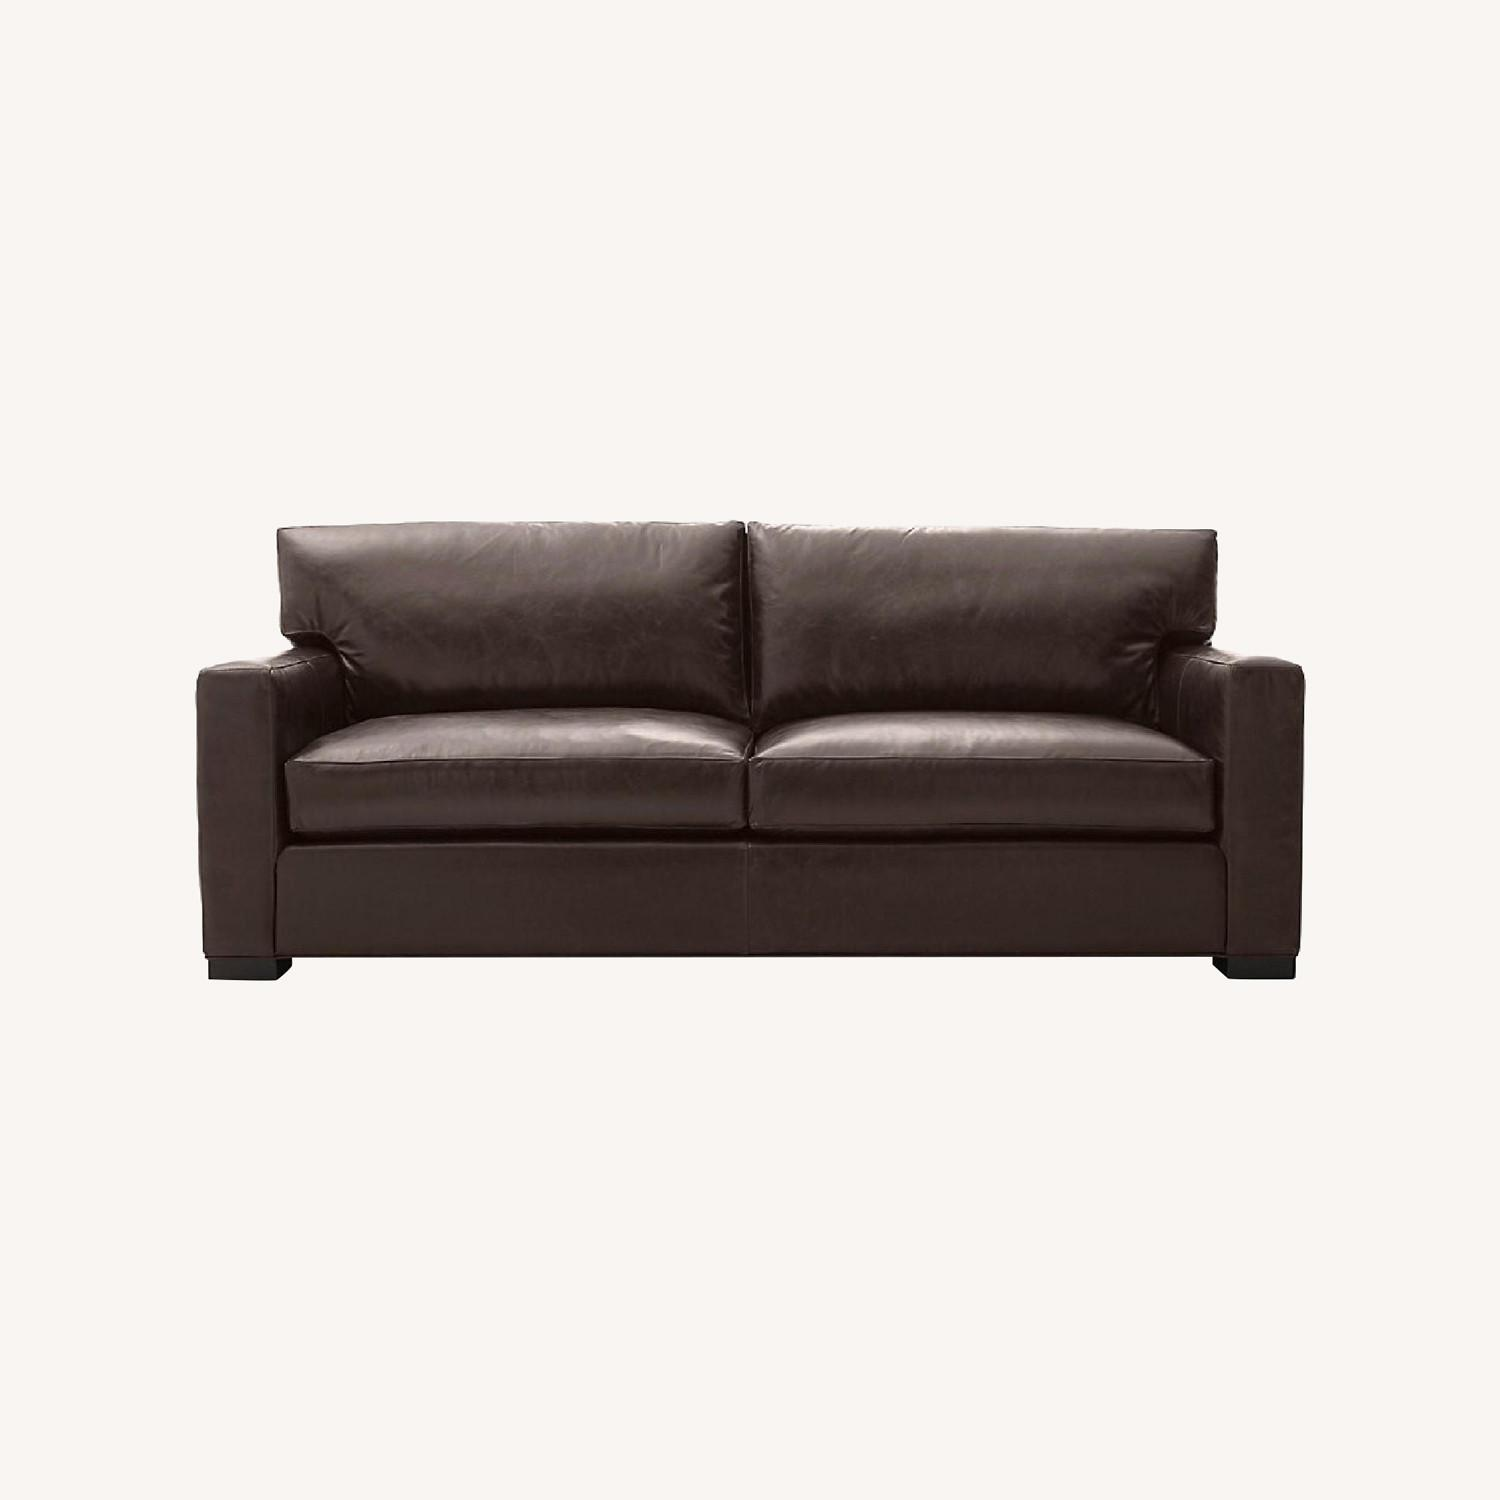 Crate and Barrel Axis Leather 2-Seat Sofa - image-0